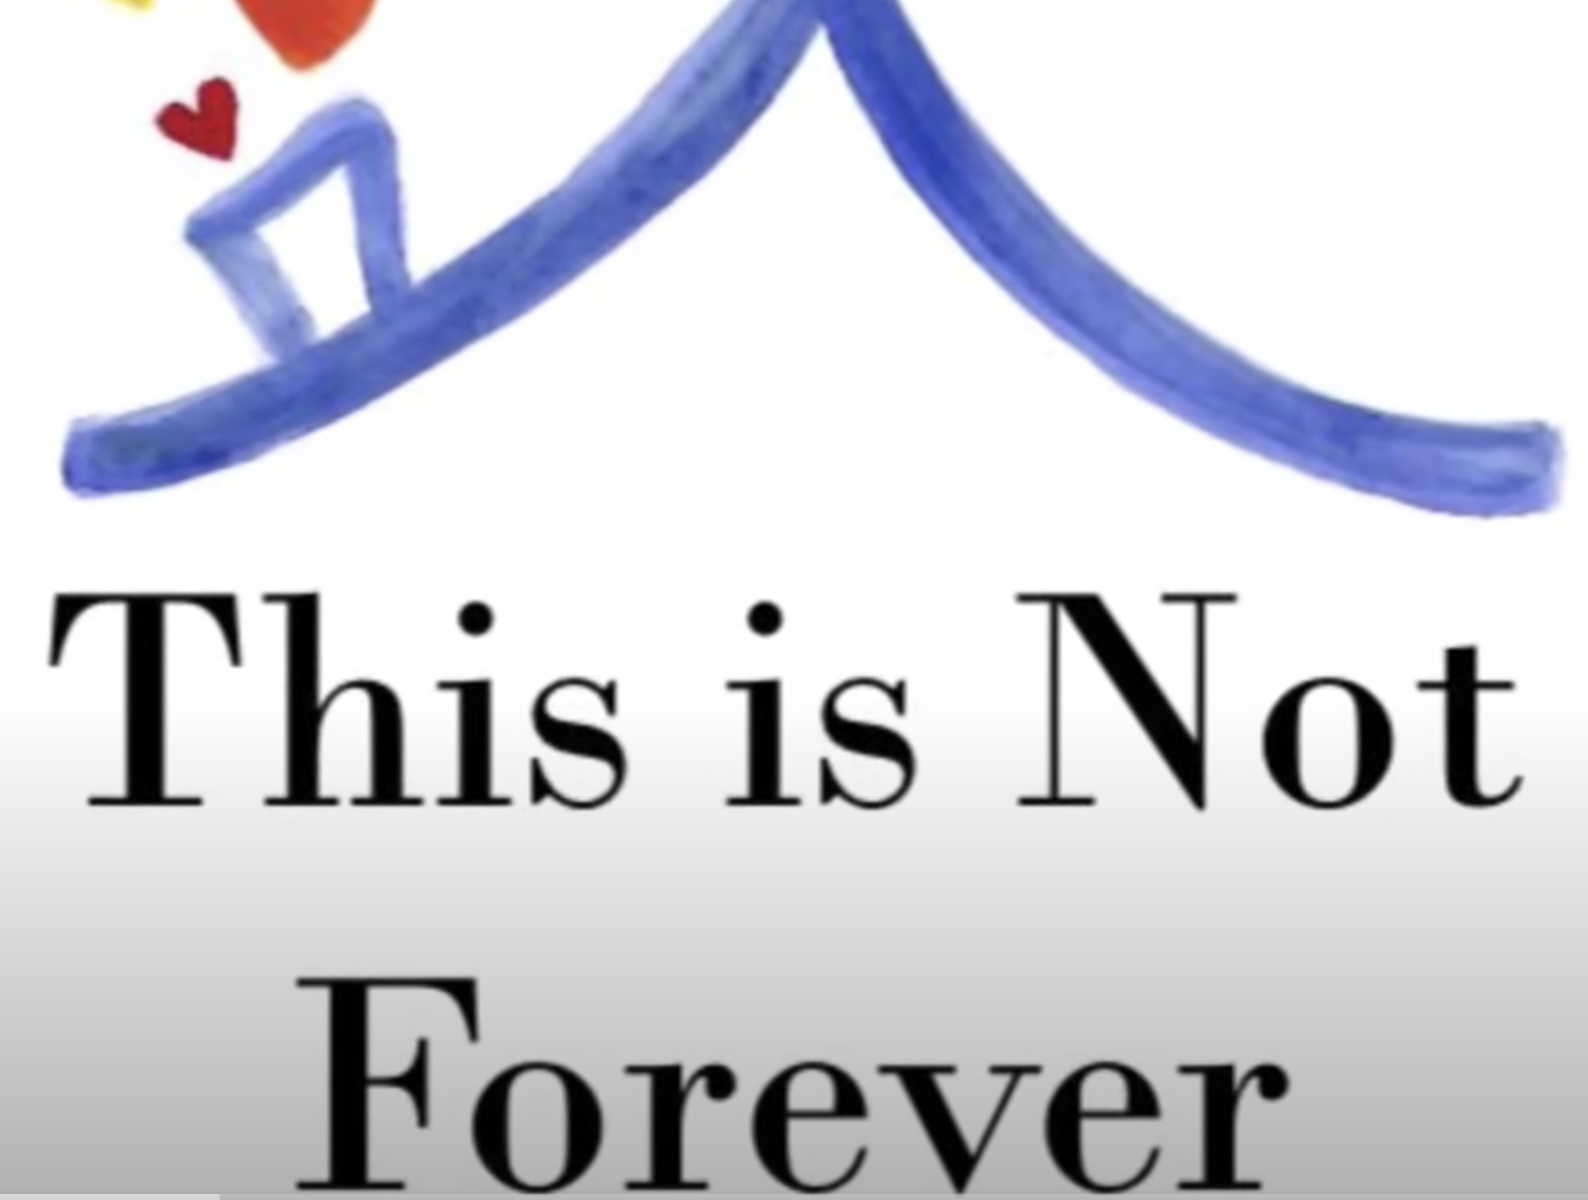 This is Not Forever